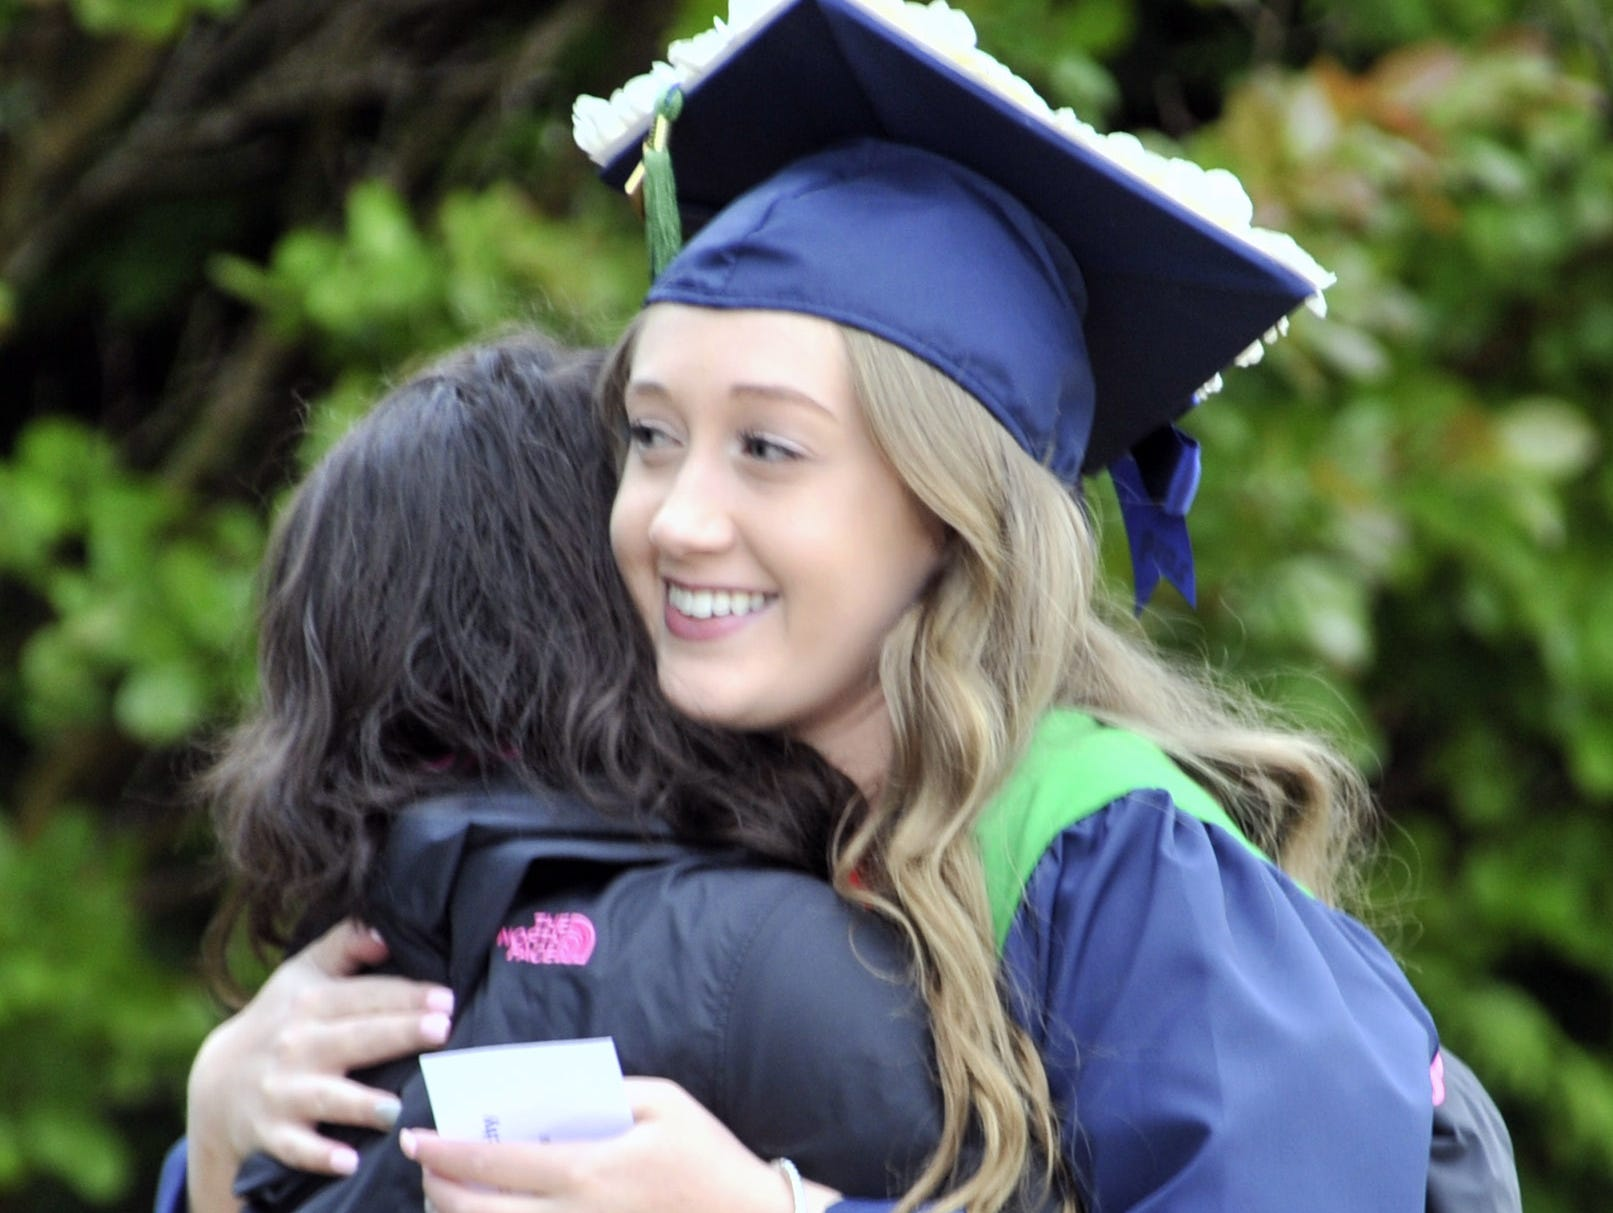 Taylor Beachy of Smyrna gets a hug from a friend before the commencement exercise at the Delaware Technical Community College's Terry Campus in Dover on Monday.